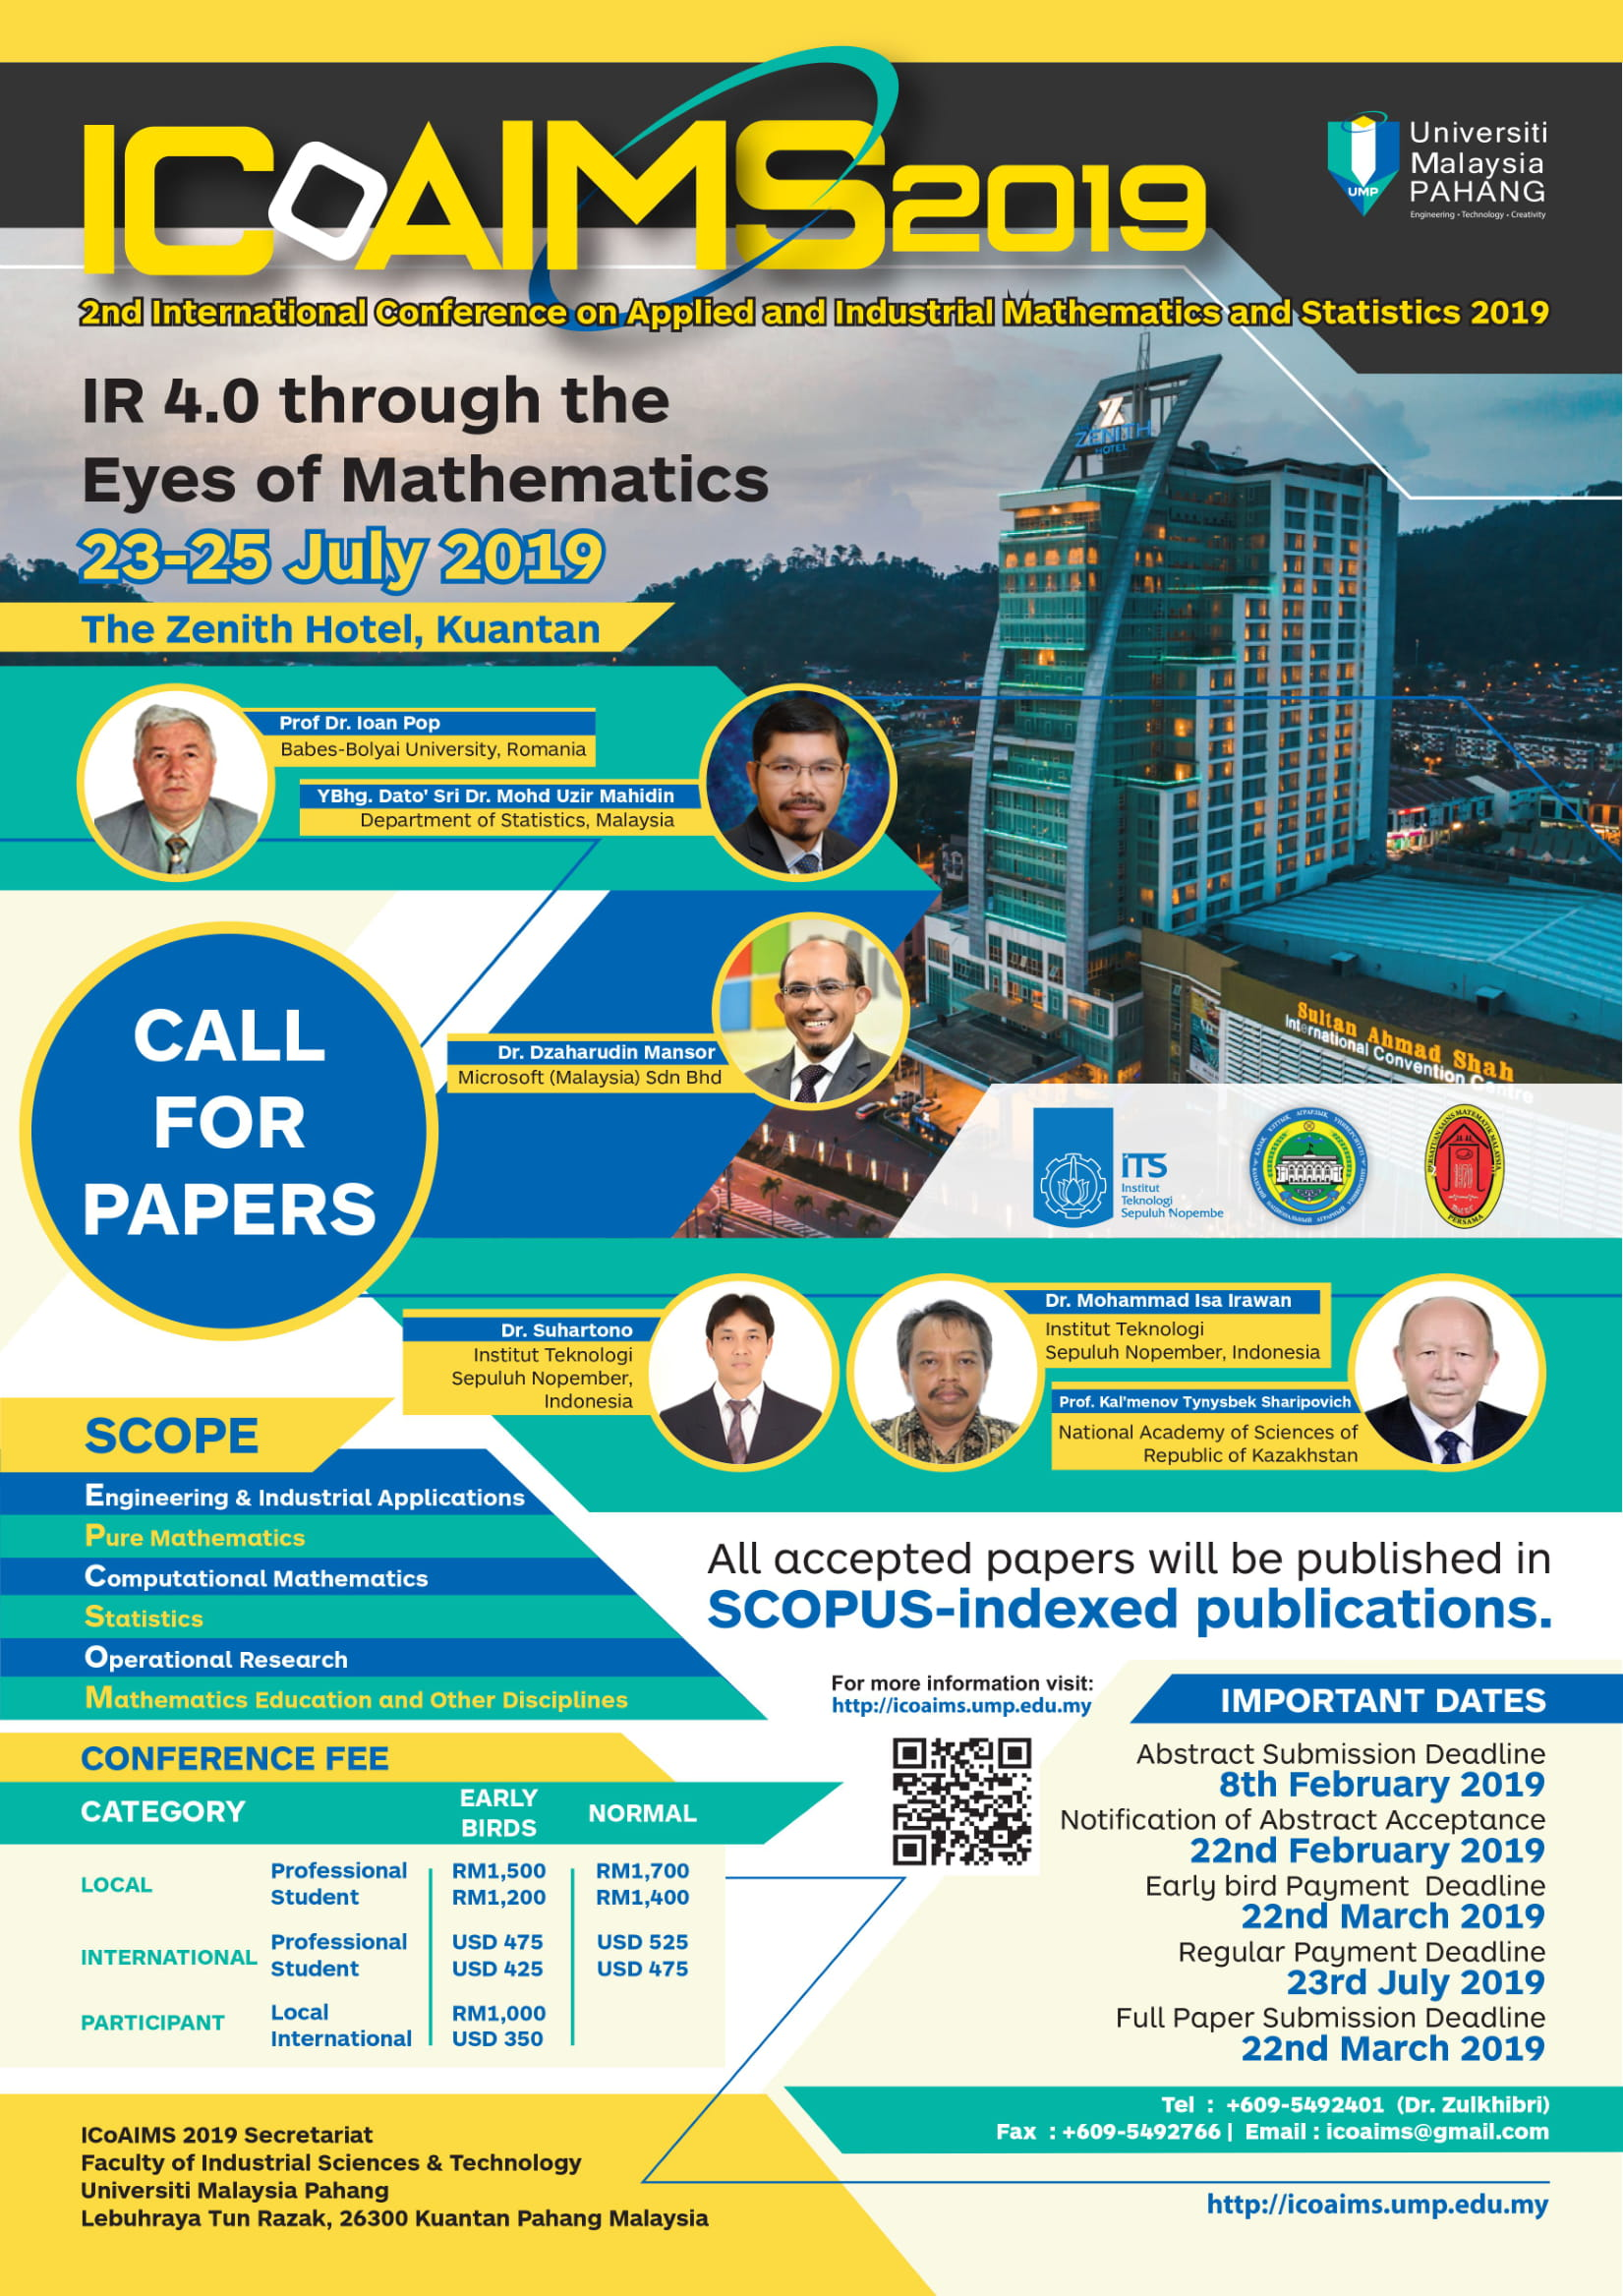 UMS - 2ND INTERNATIONAL CONFERENCE ON APPLIED & INDUSTRIAL